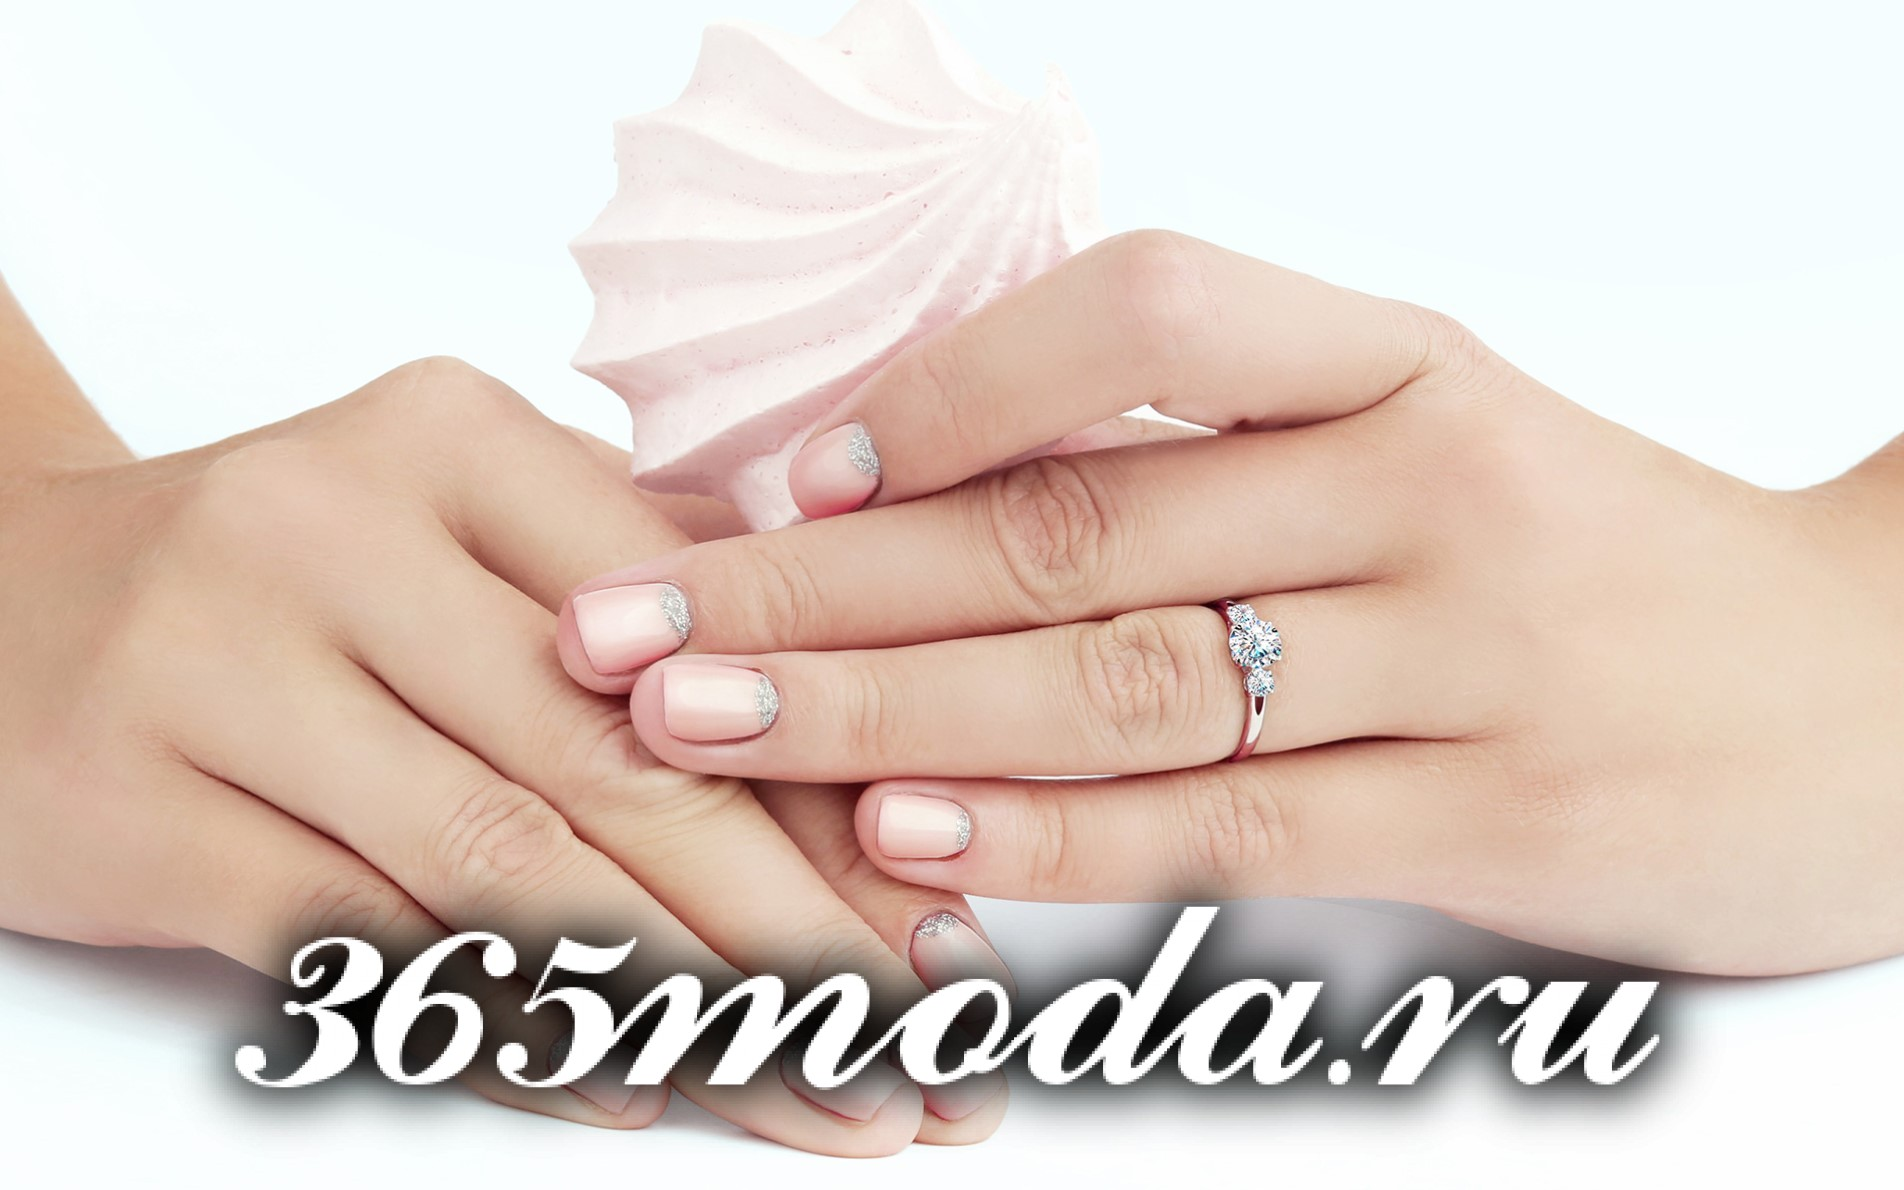 NudeManicure (84)